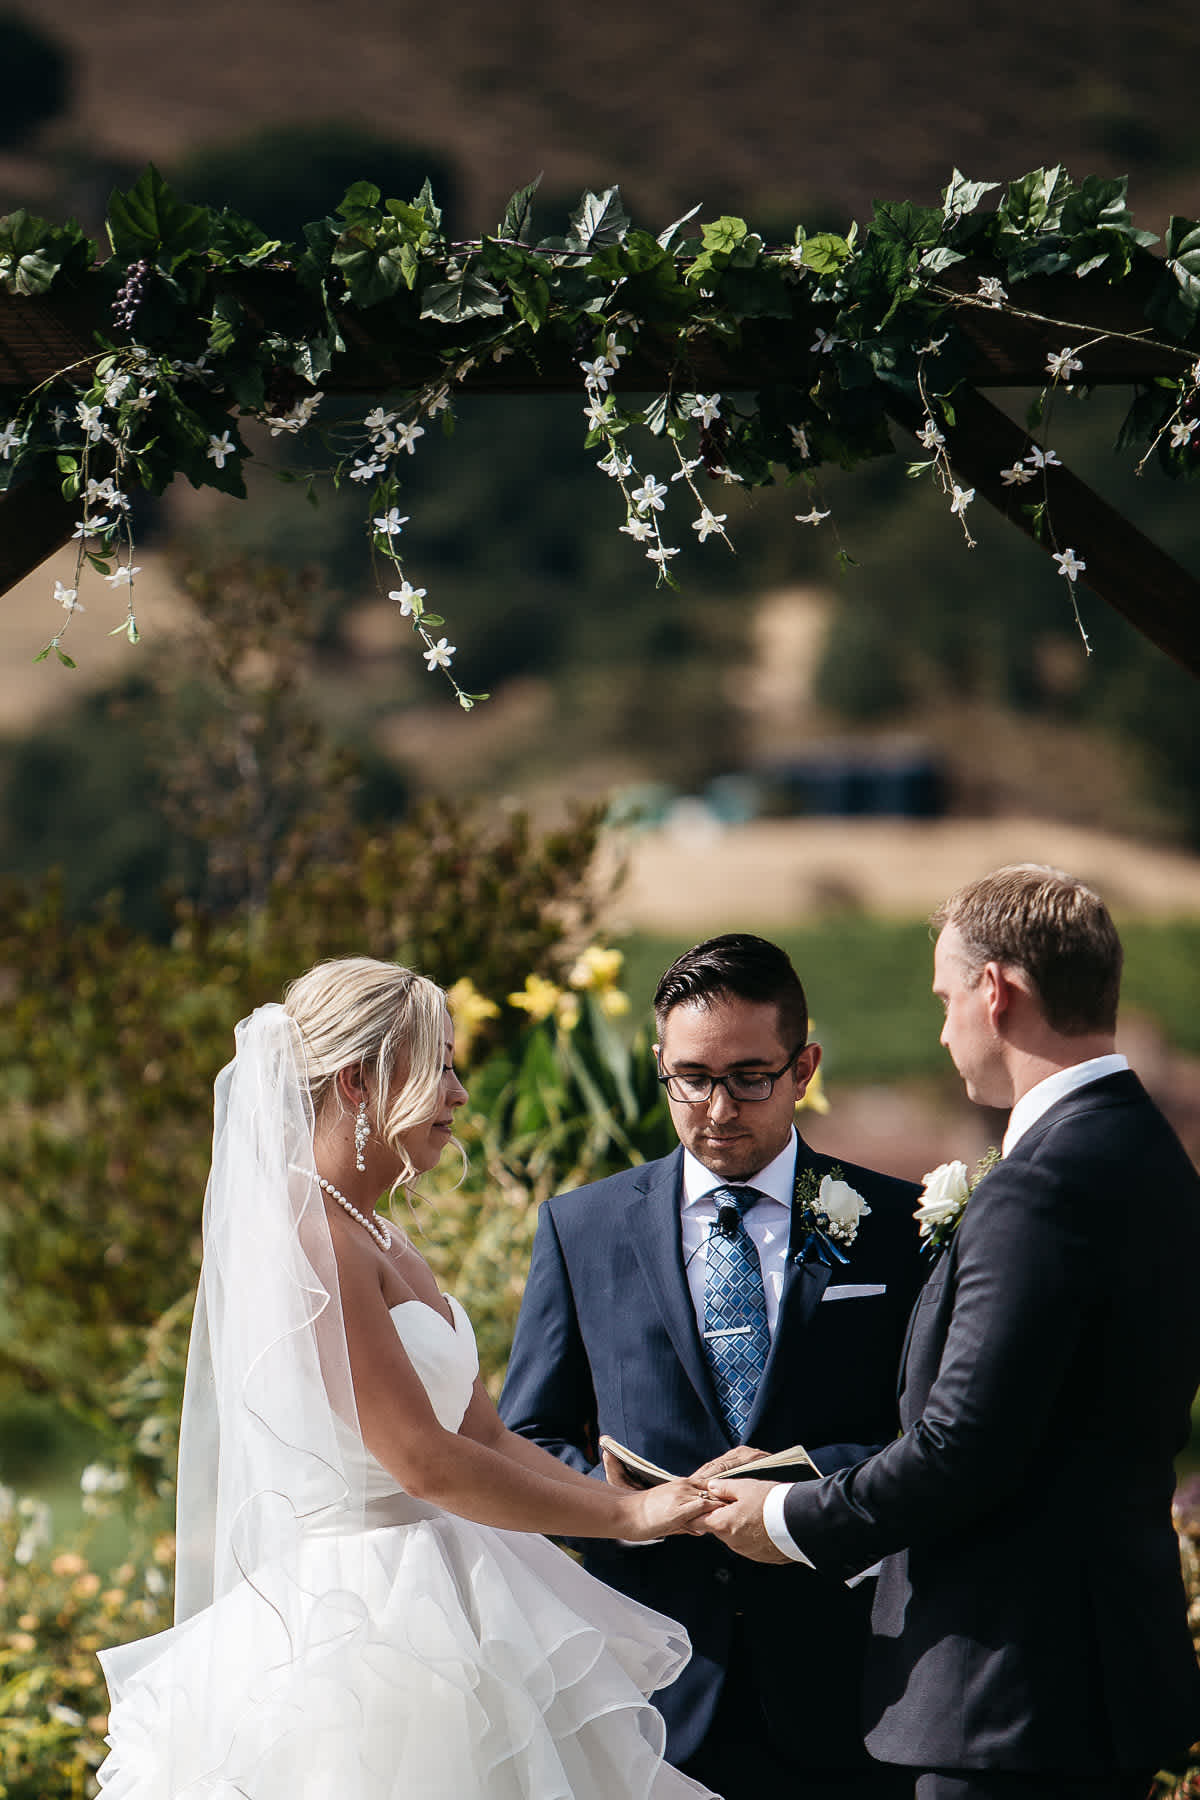 kirigin-cellars-gilroy-summer-sunset-wedding-41